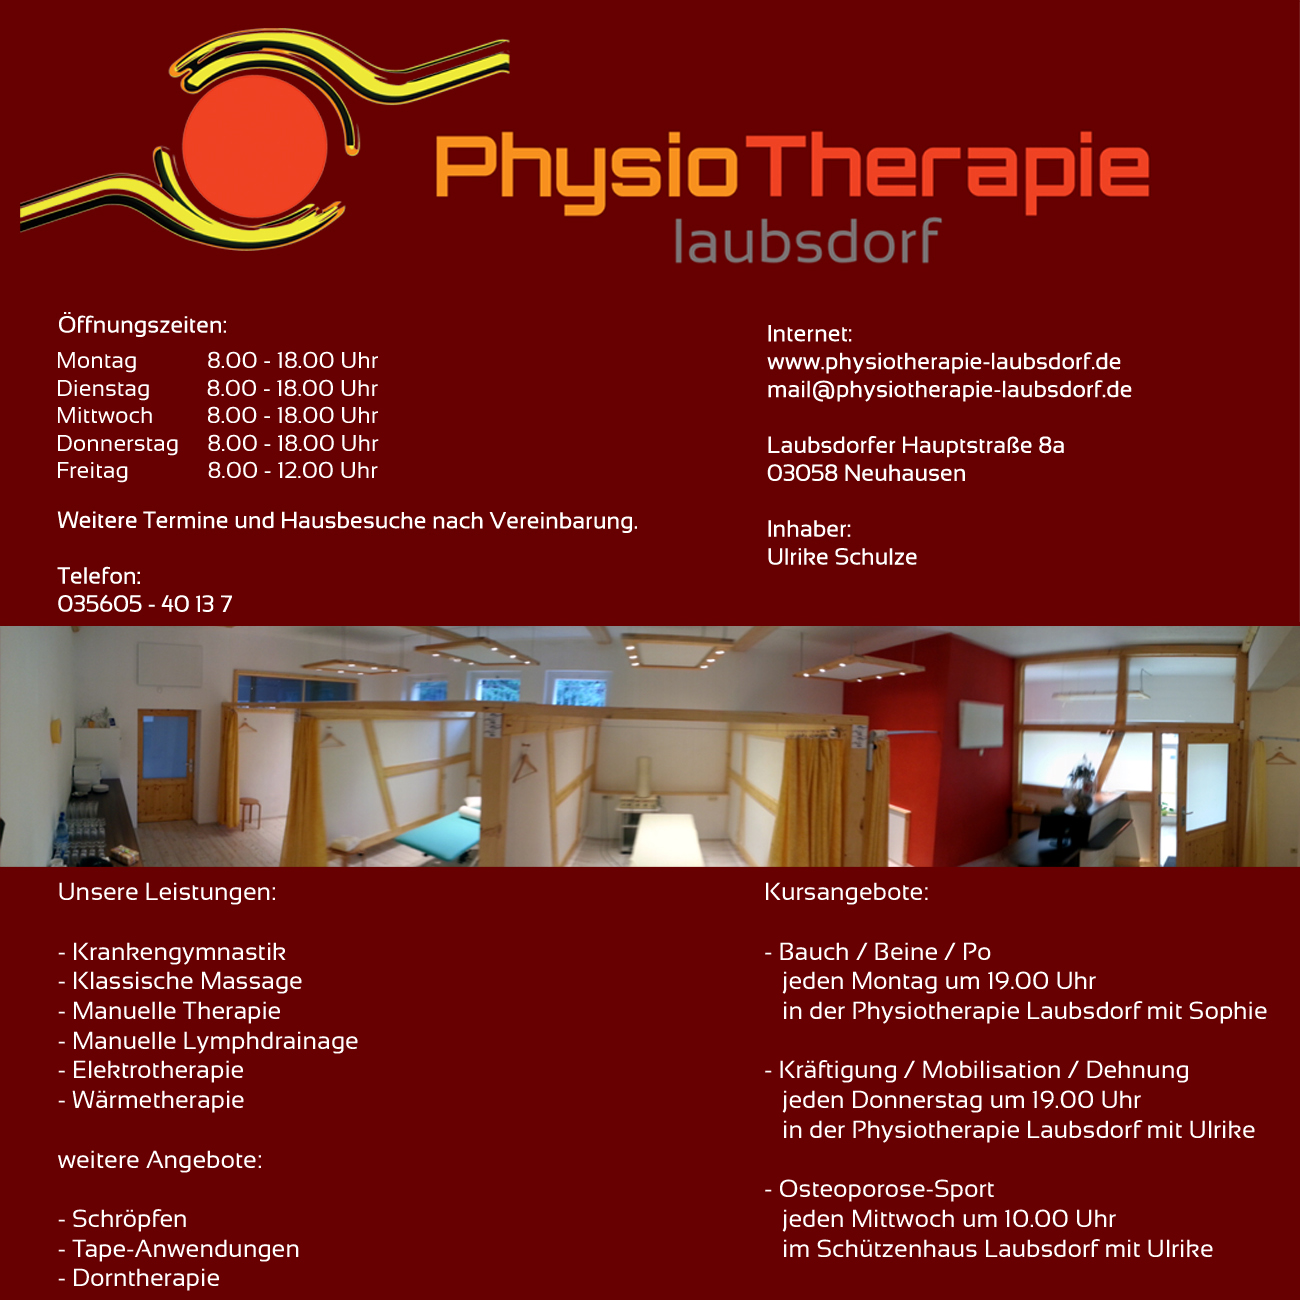 Physiotherapie Laubsdorf